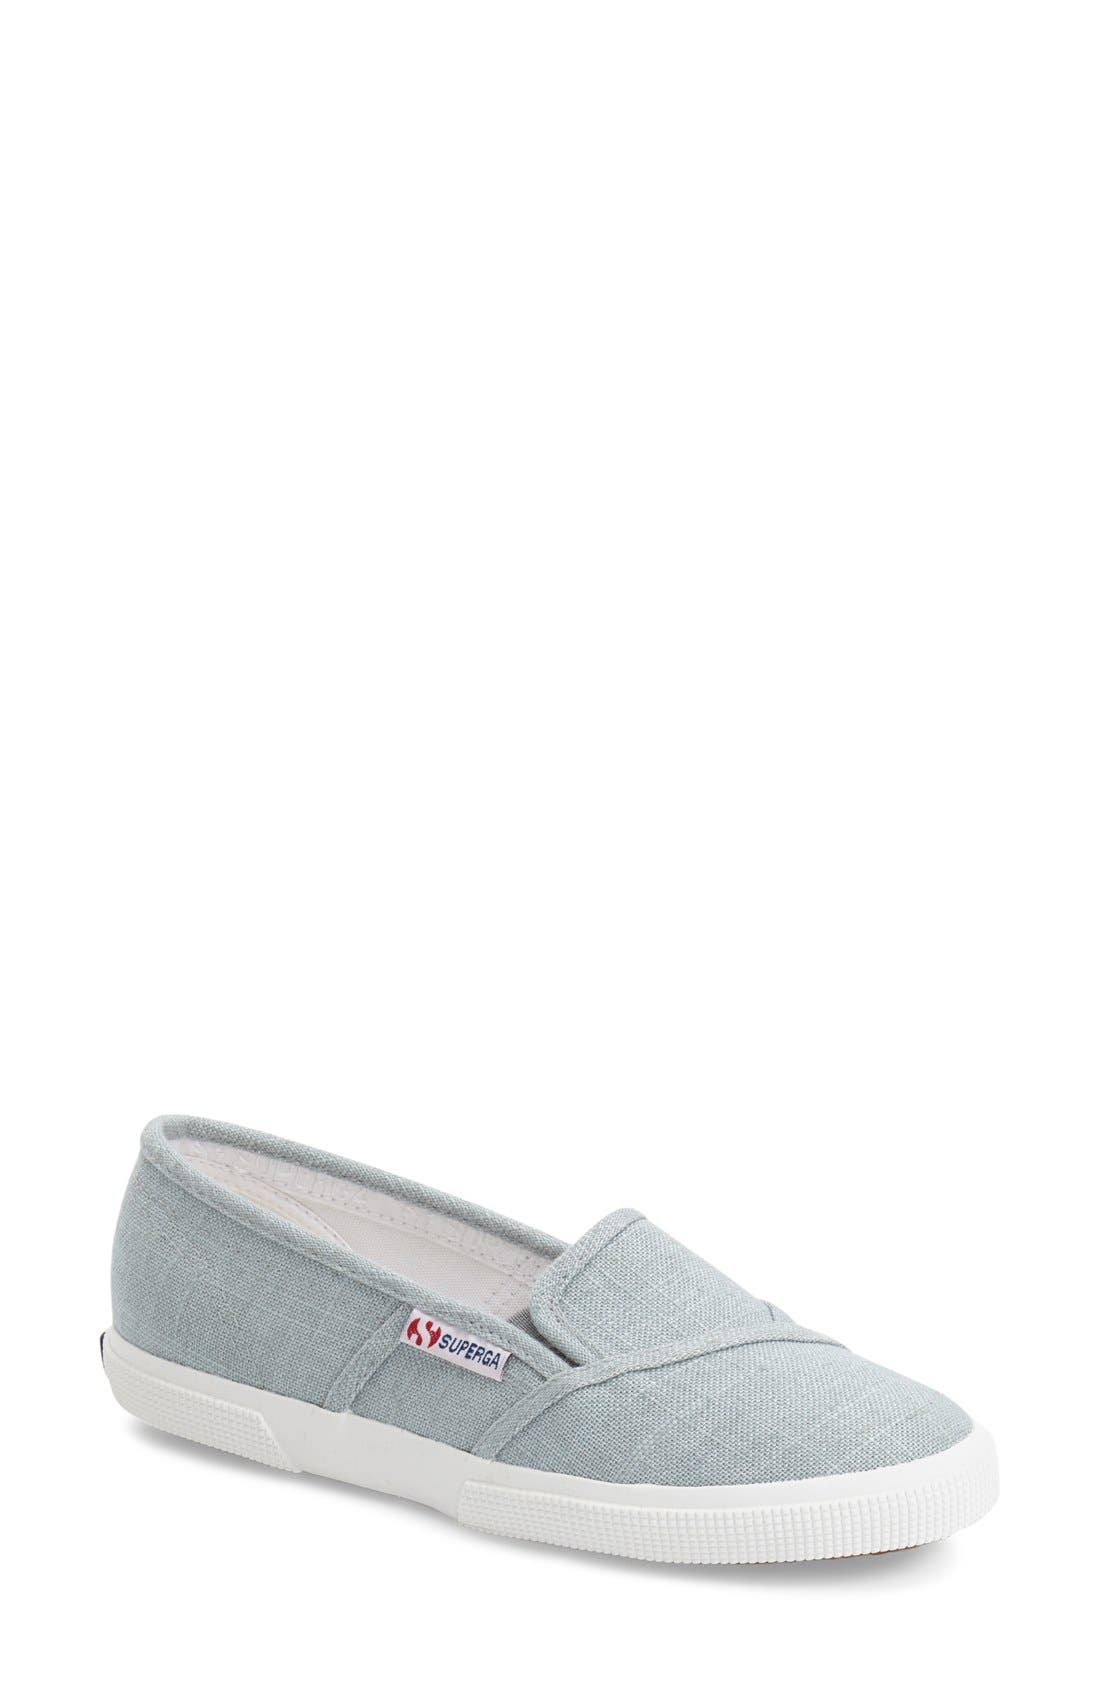 Alternate Image 1 Selected - Superga 'Linu' Slip-On Sneaker (Women)